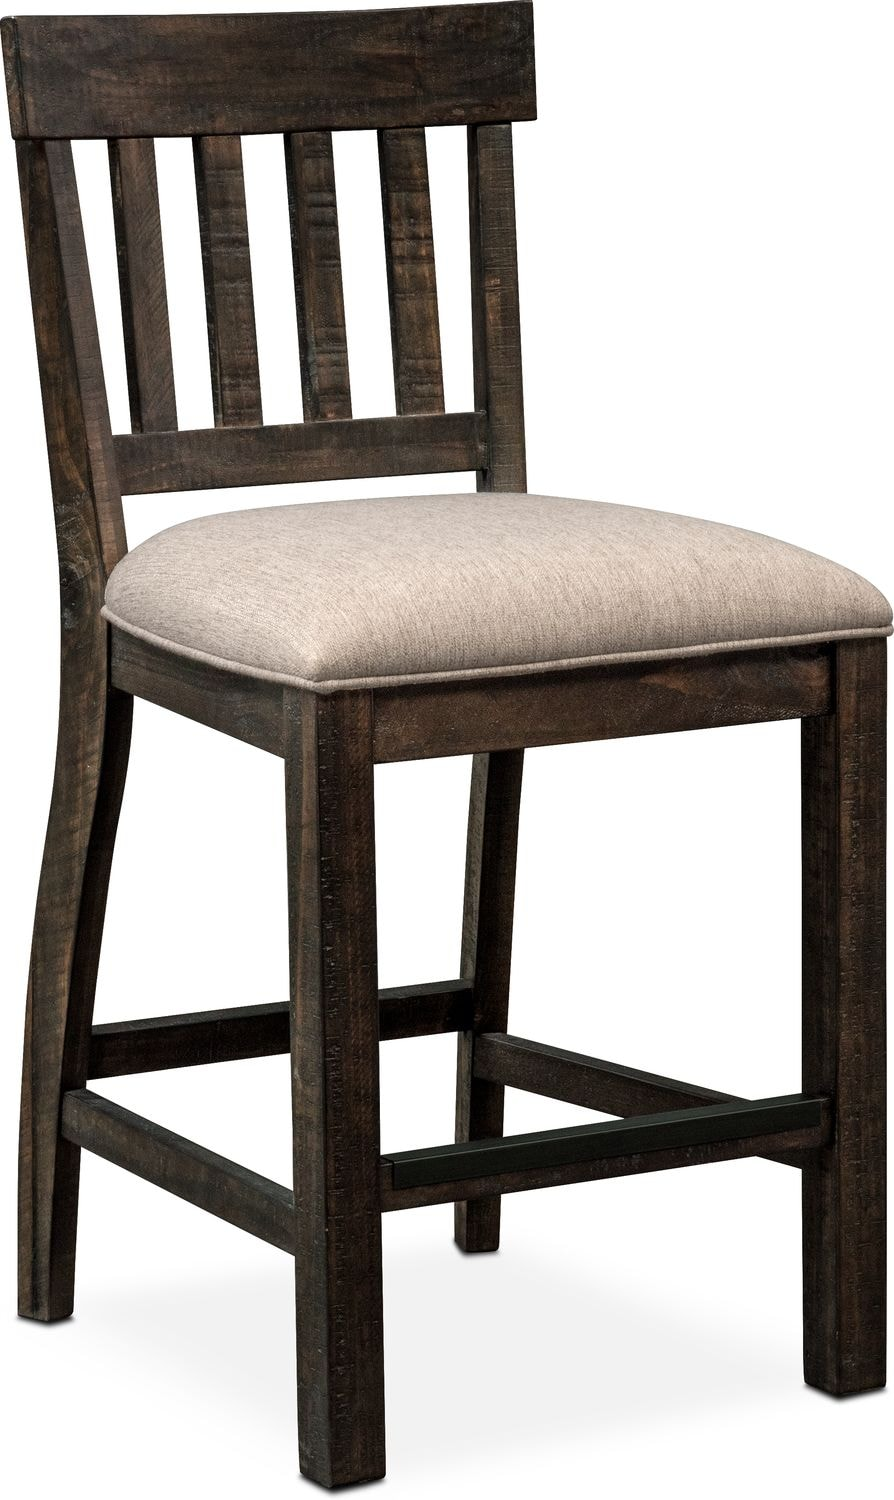 Pleasant Charthouse Counter Height Stool Ibusinesslaw Wood Chair Design Ideas Ibusinesslaworg